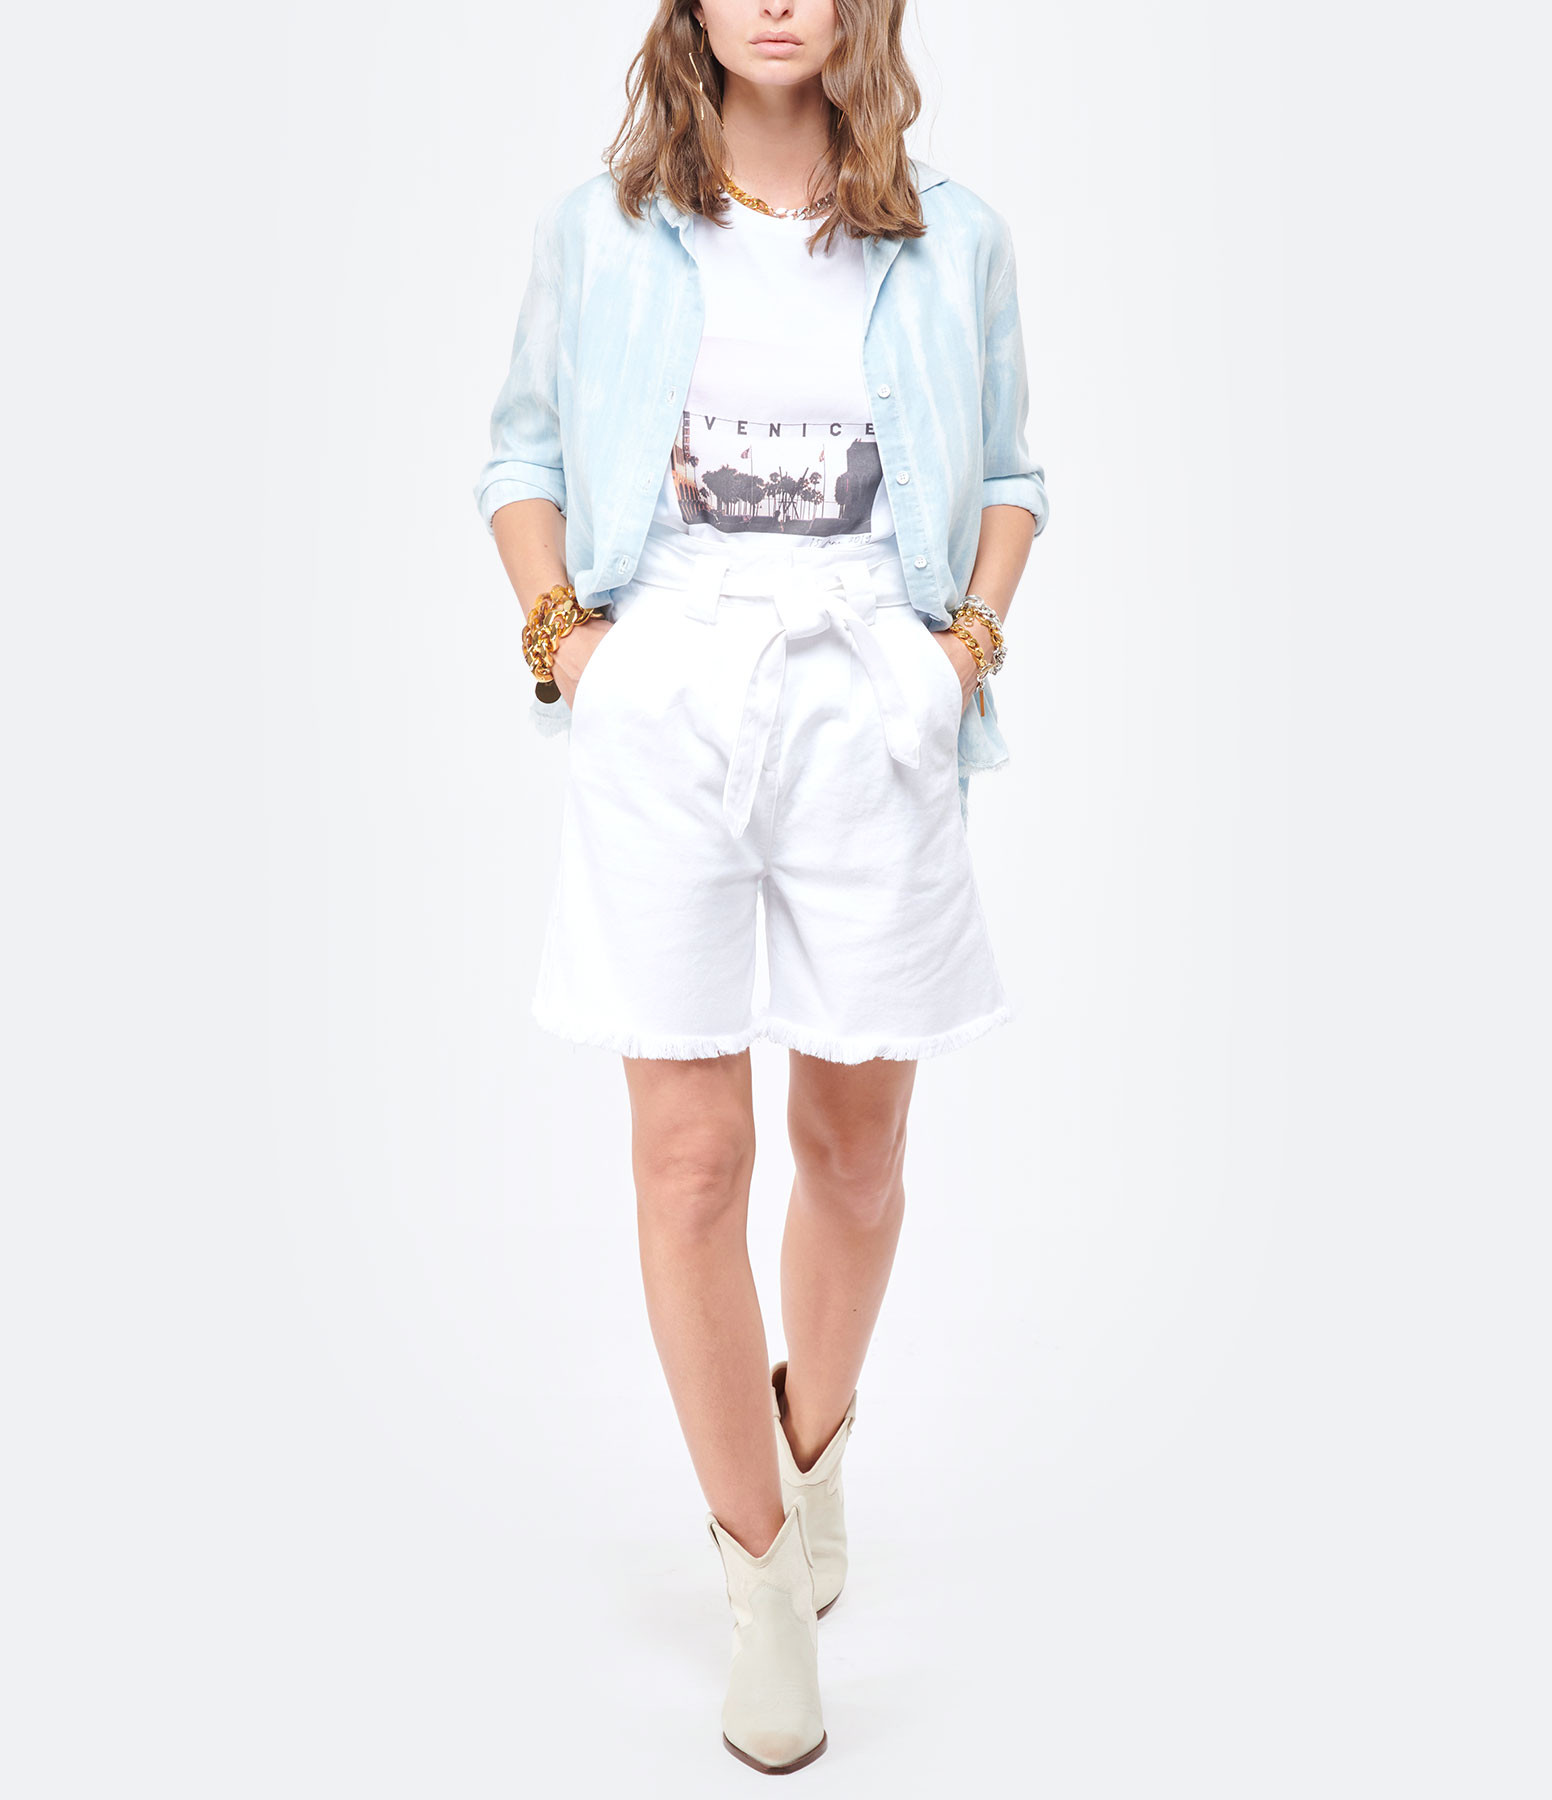 JEANNE VOULAND - Short Folco Denim Off White Blanc